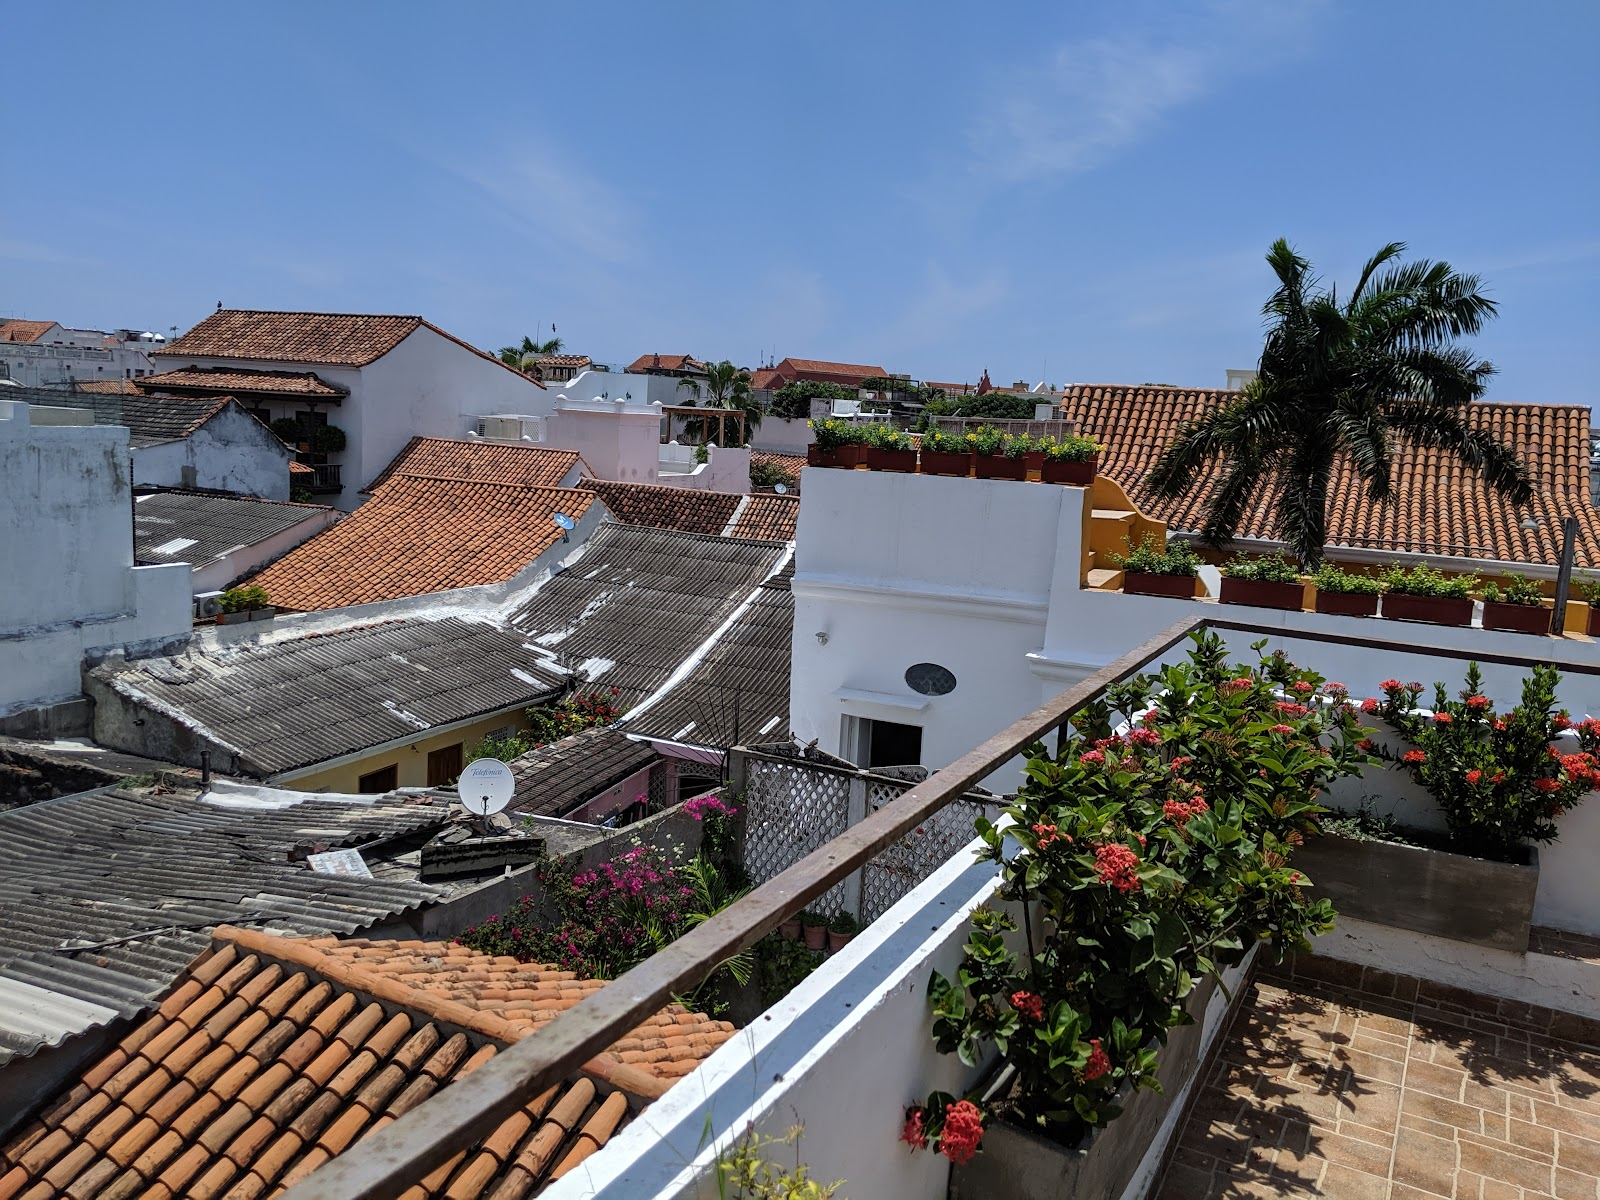 Rooftop at Maloka Boutique Hotel in Cartagena, Colombia.